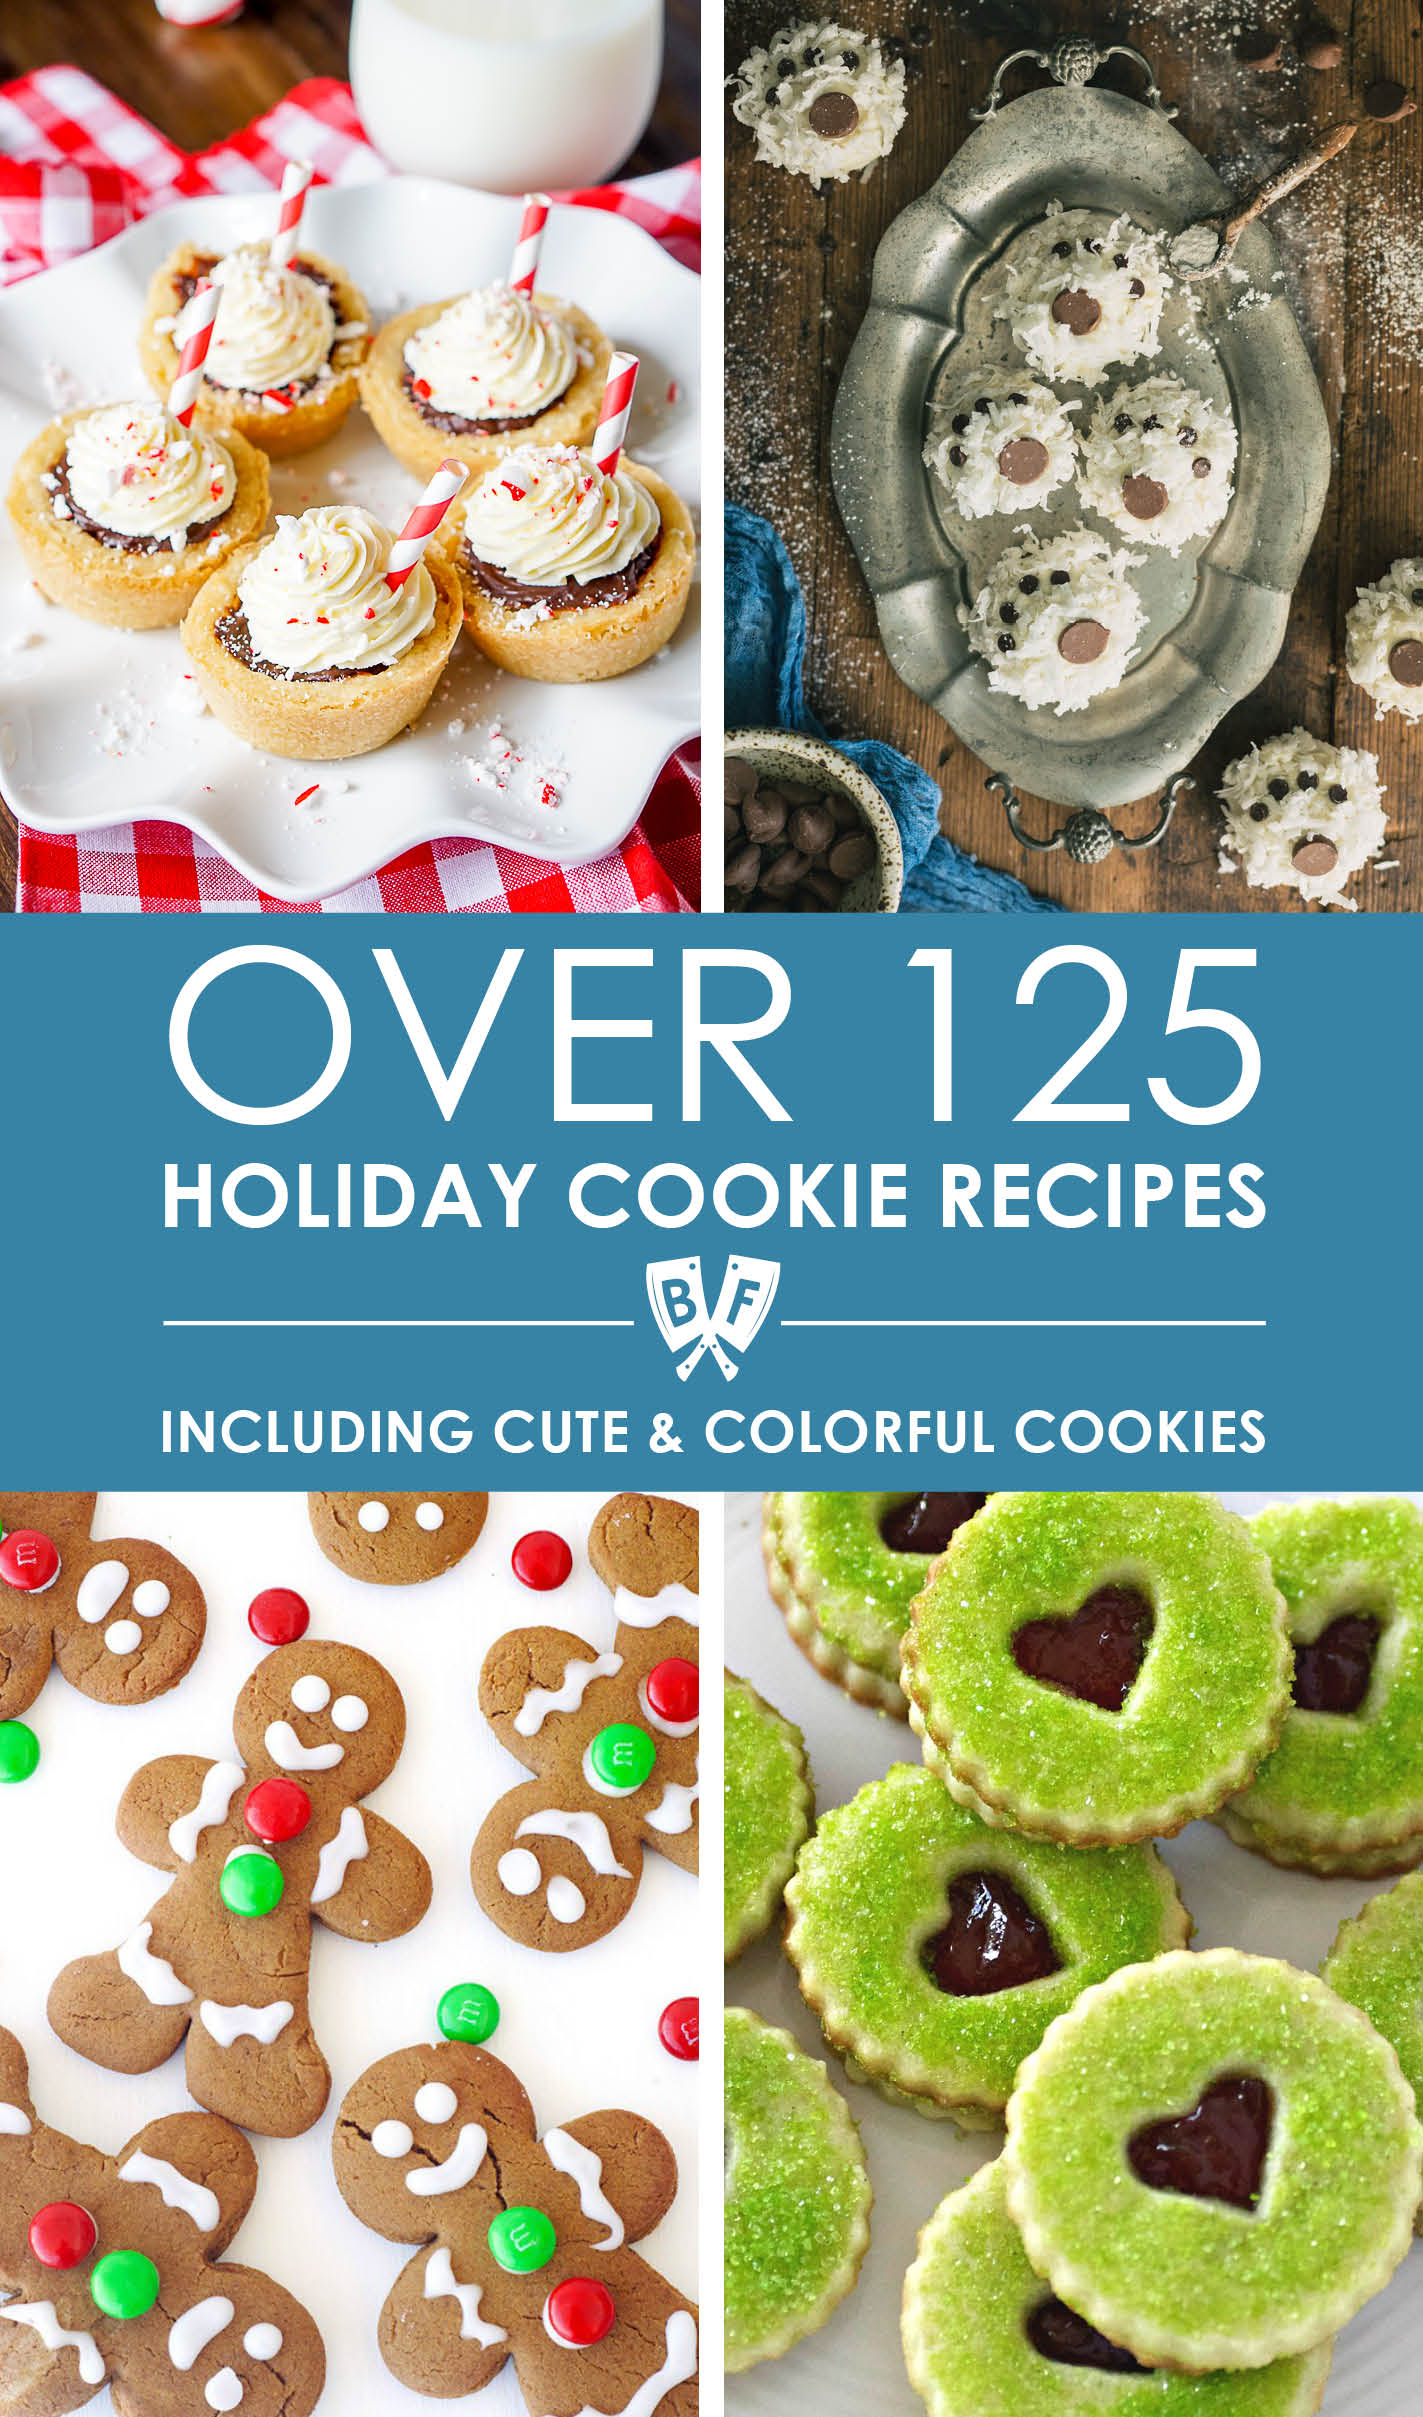 This epic holiday cookie recipe roundup contains over 125 favorite Christmas and holiday cookie recipes across 7 different categories to make your holiday baking and cookie swap parties so much easier!